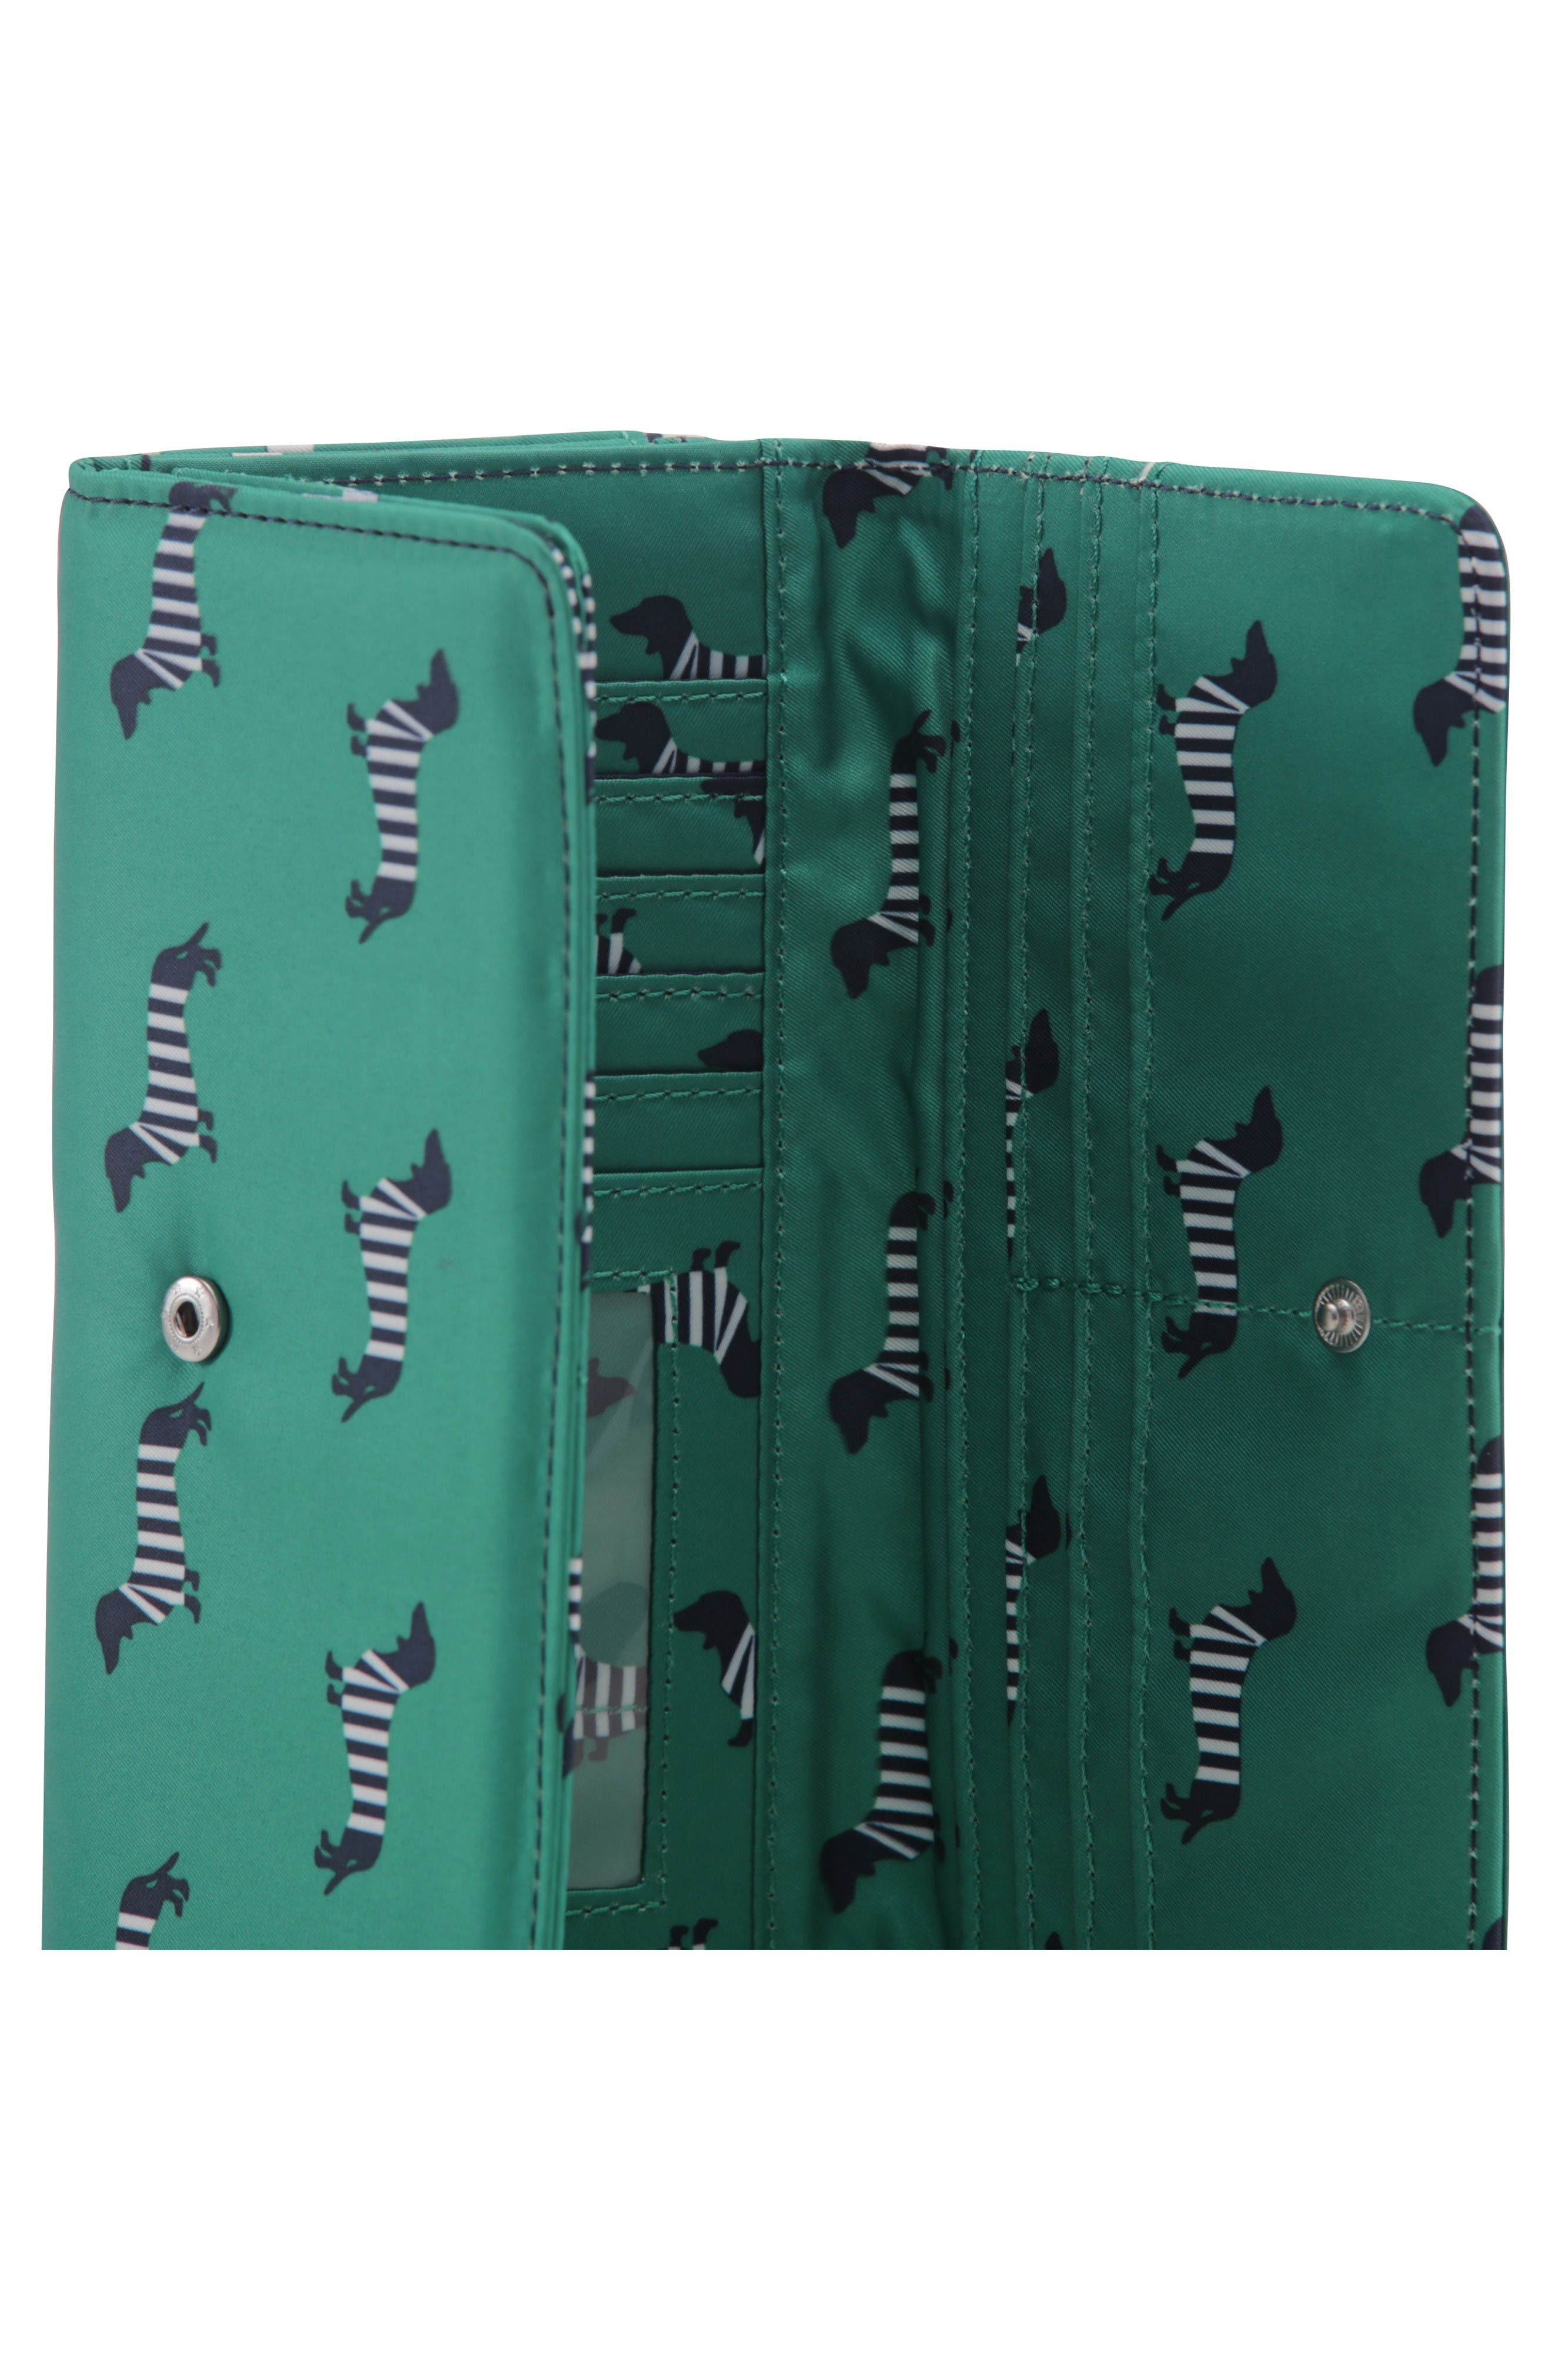 Be Rich - Coastal Collection Trifold Clutch Wallet,                             Alternate thumbnail 6, color,                             Coney Island